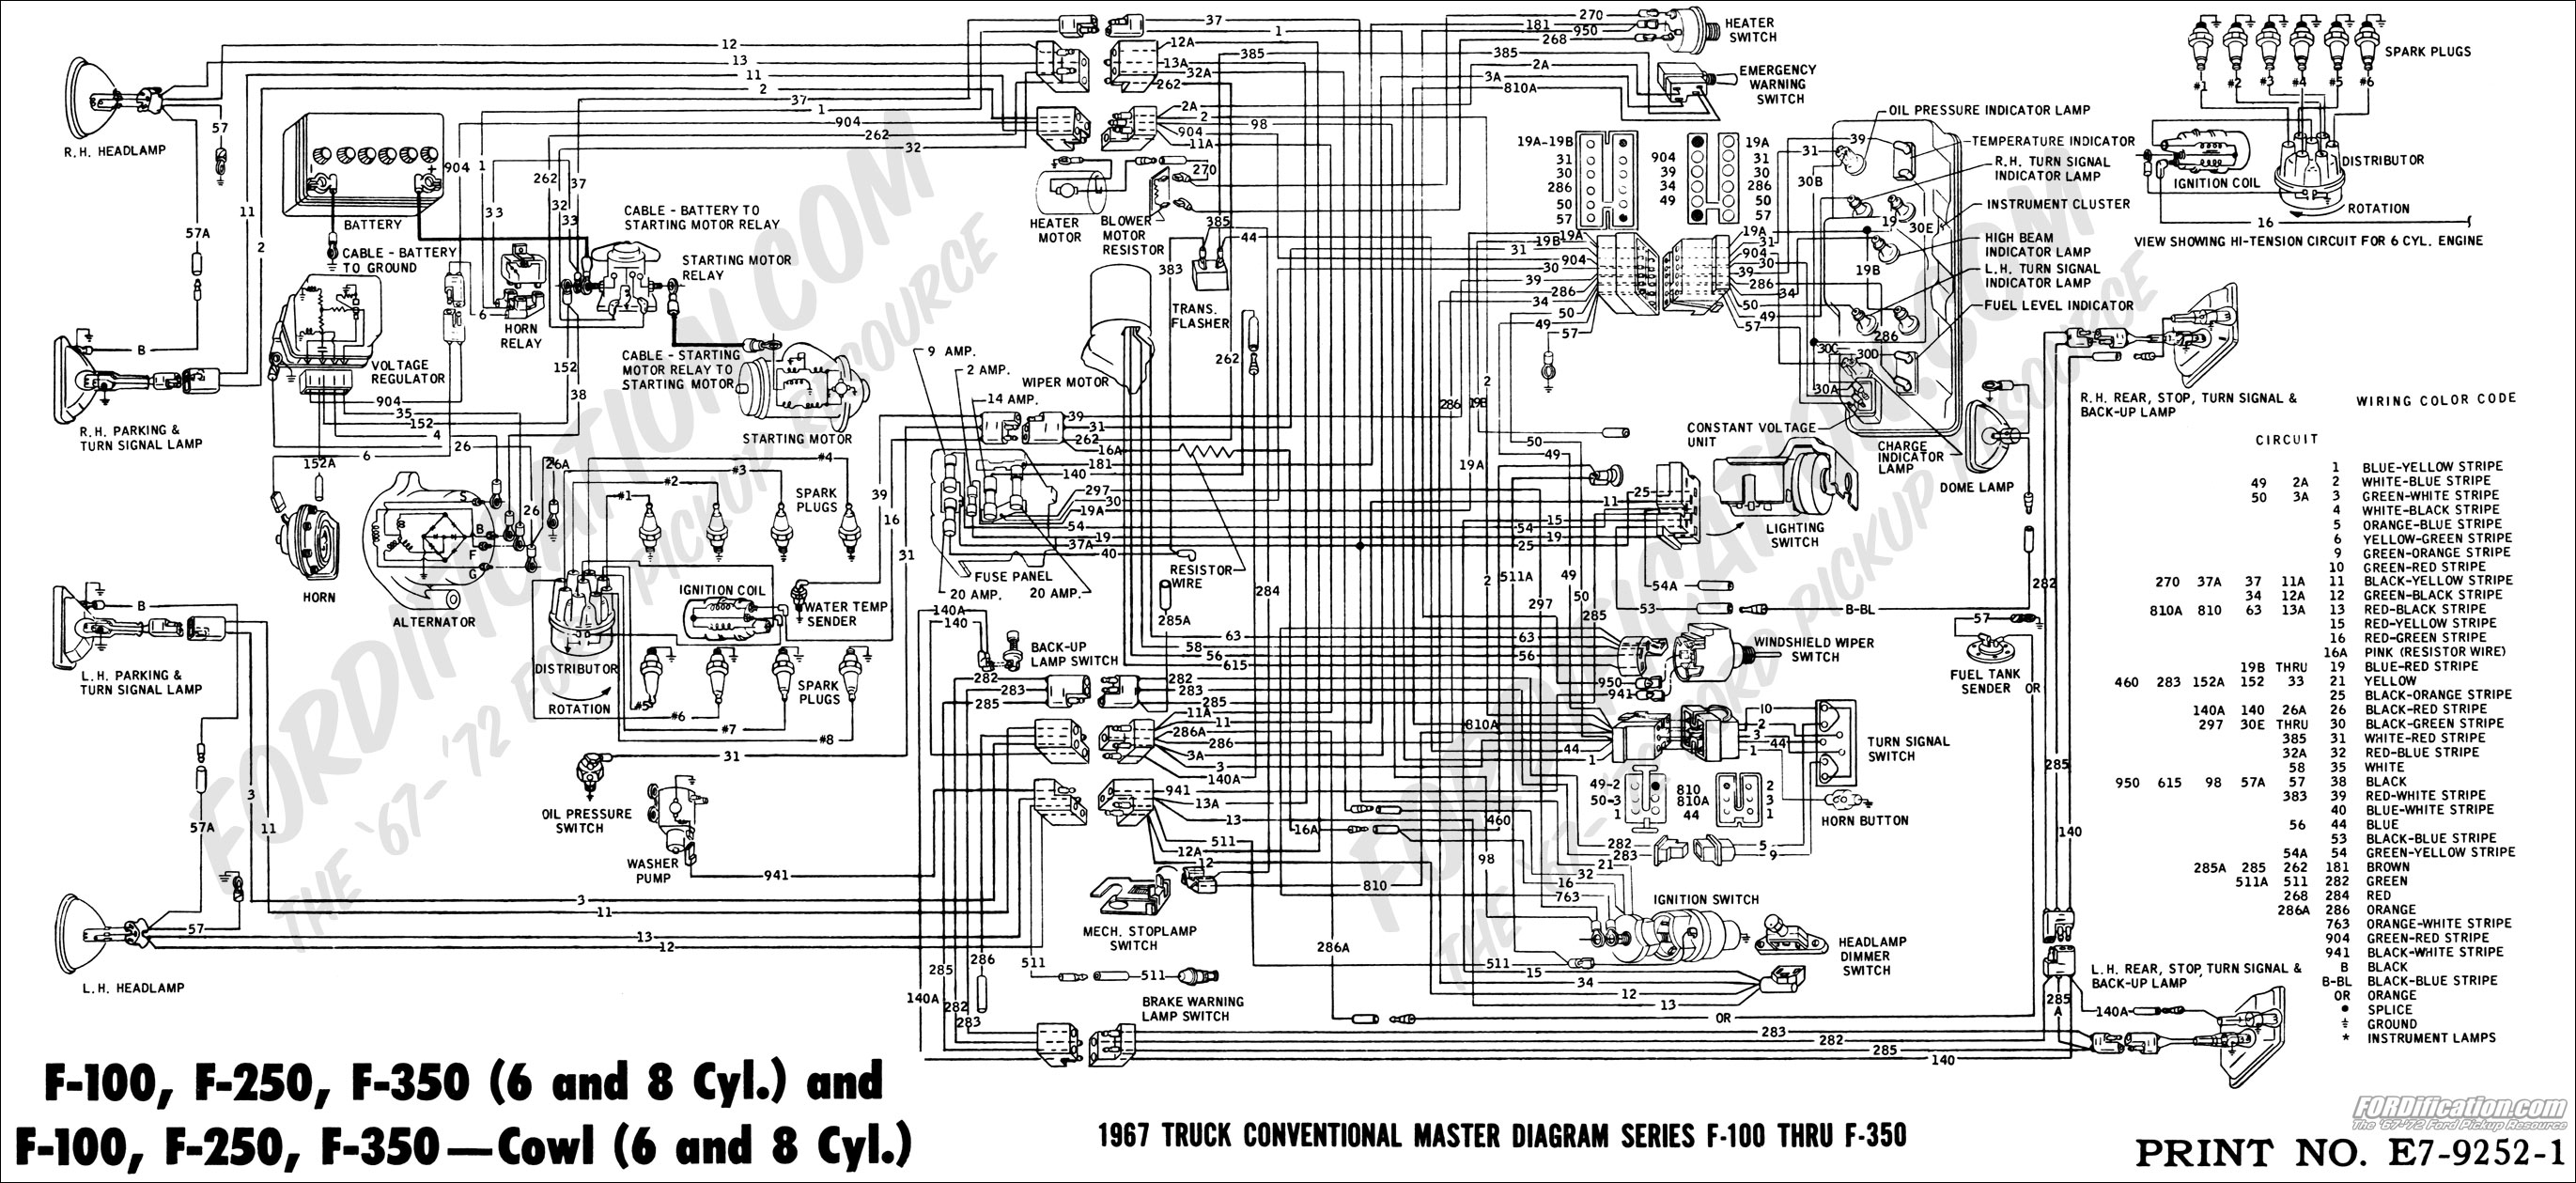 Ford F Wiring Diagrams on 1998 ford windstar wiring diagram, ford radio wiring diagram, ford explorer wiring diagram, ford radio wiring color code, ford bronco wiring diagram, ford e 350 wiring diagrams, ford mustang wiring diagram, ford ranger wiring diagram, ford e250 wiring diagram, ford car radio wire diagrams, ford truck wiring diagrams, ford edge wiring diagram, f250 wiring diagram, ford super duty wiring diagram, ford e-150 wiring-diagram, ford f-350 wiring diagram, dodge ram wiring diagram, 2003 f150 fuse box diagram, ford starter solenoid wiring diagram, ford factory radio wire colors,